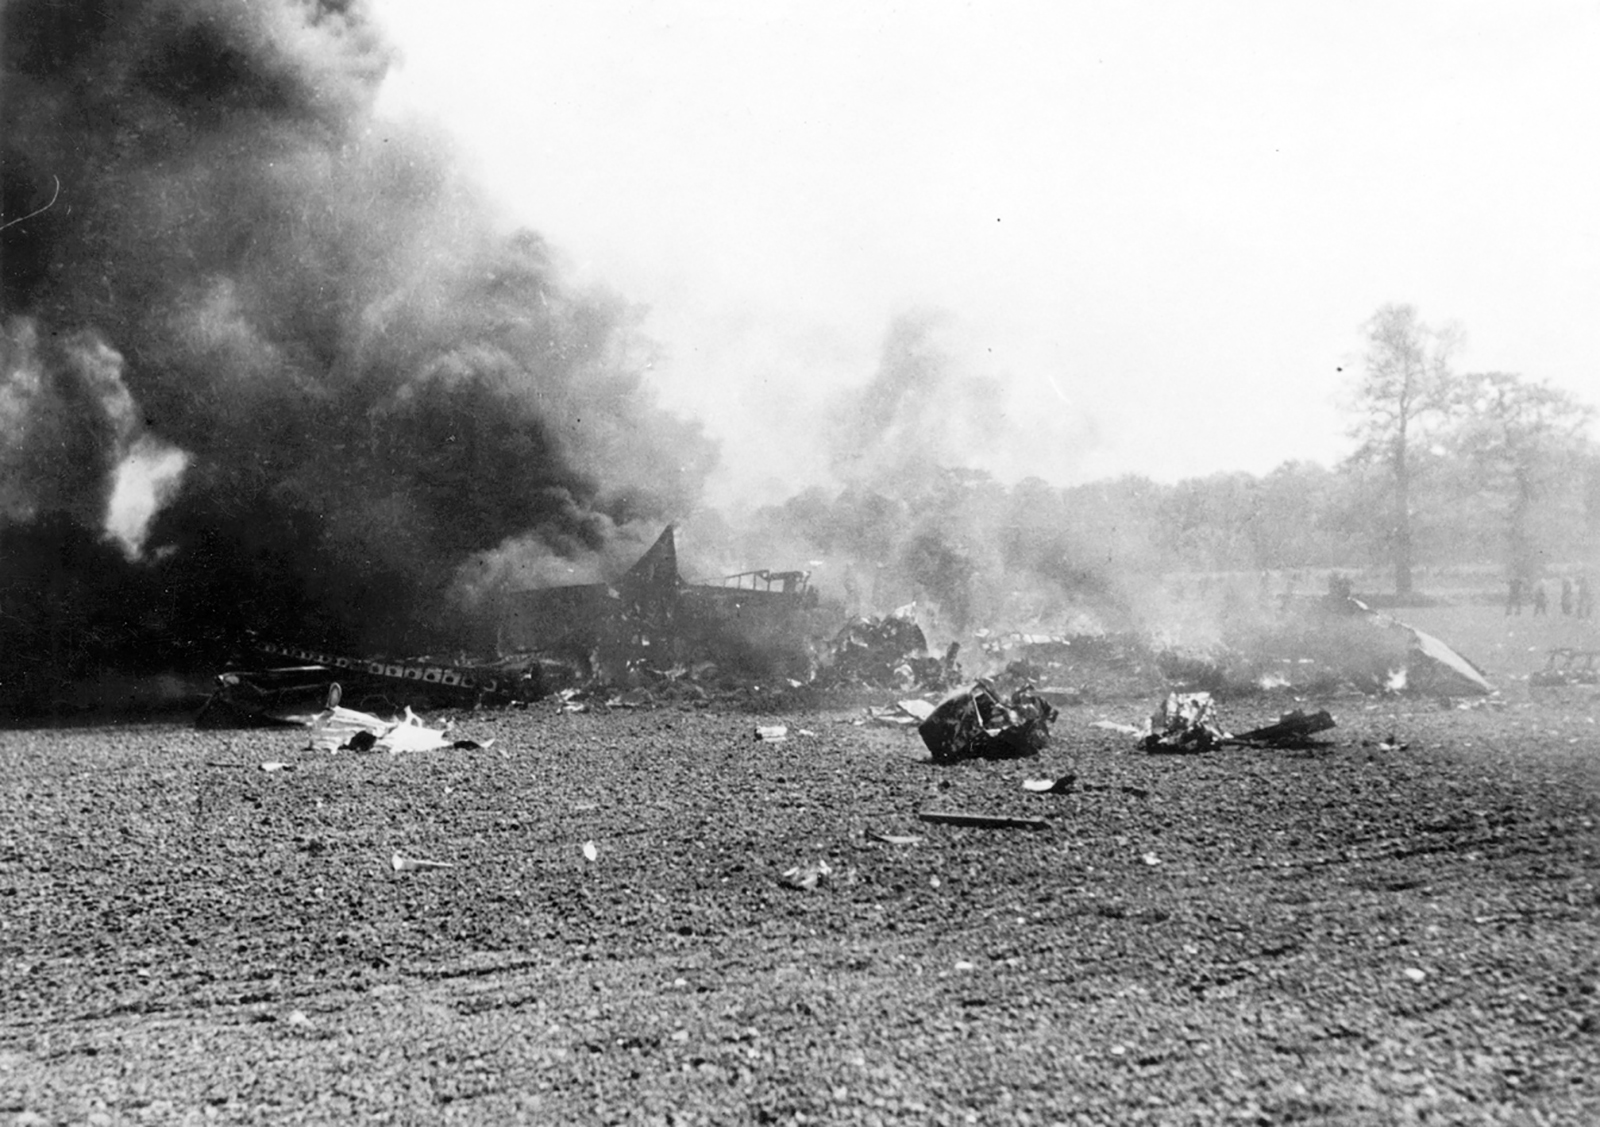 USAAF 41 17988 B 26B Marauder 322BG452BS DRR crashed near home base 14 May 1943 01